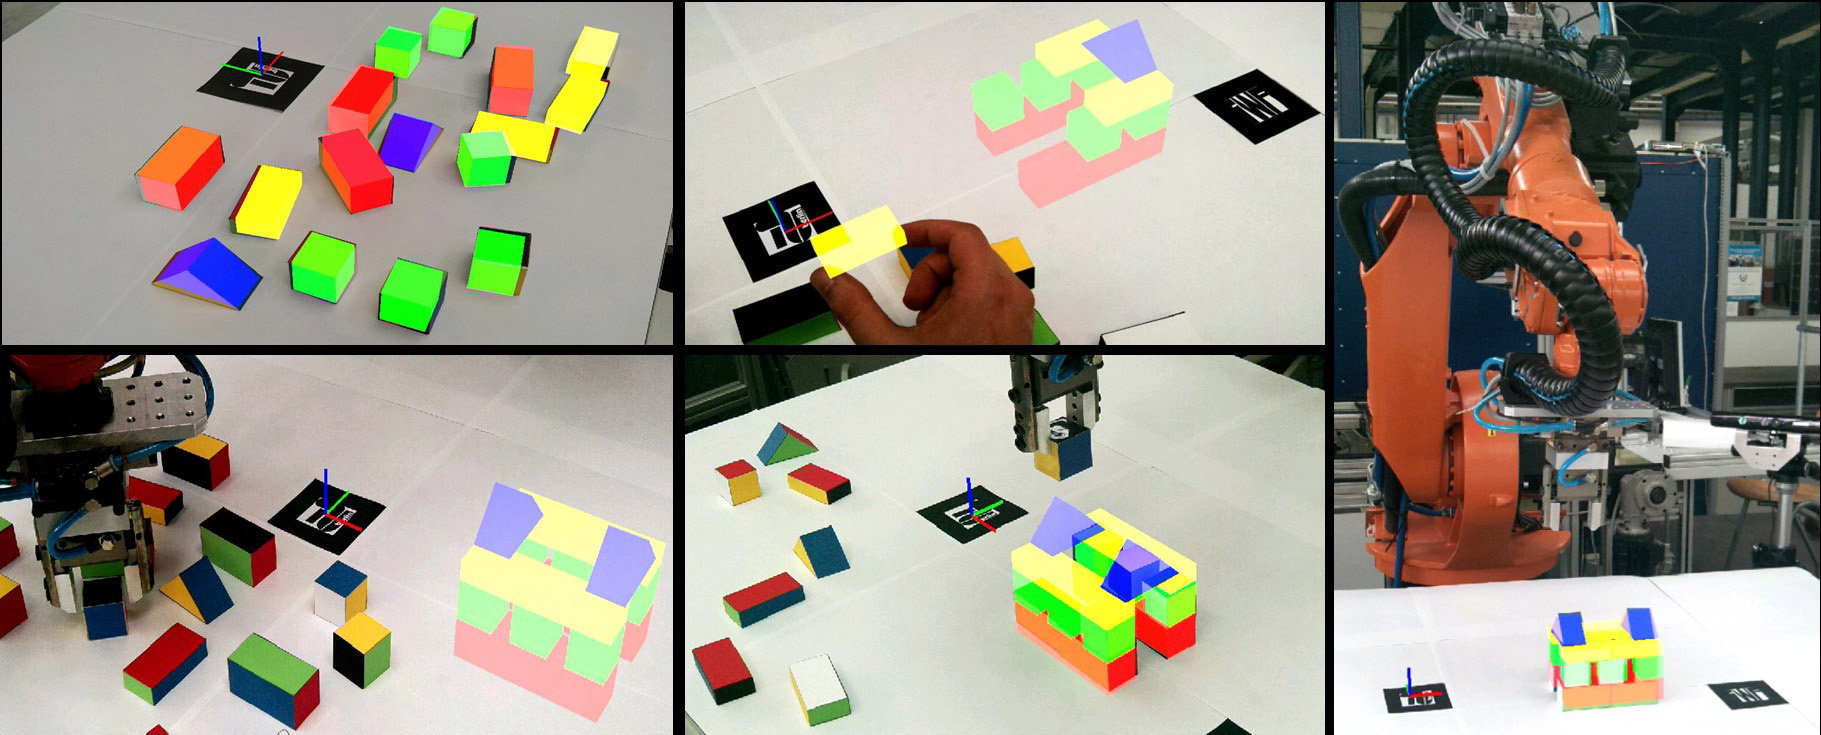 Visualization of the initial scene (top left), the translation process of individual workpieces by demonstration (top center), the execution of the task by the real robot (bottom left and center) and completion of the task (right)